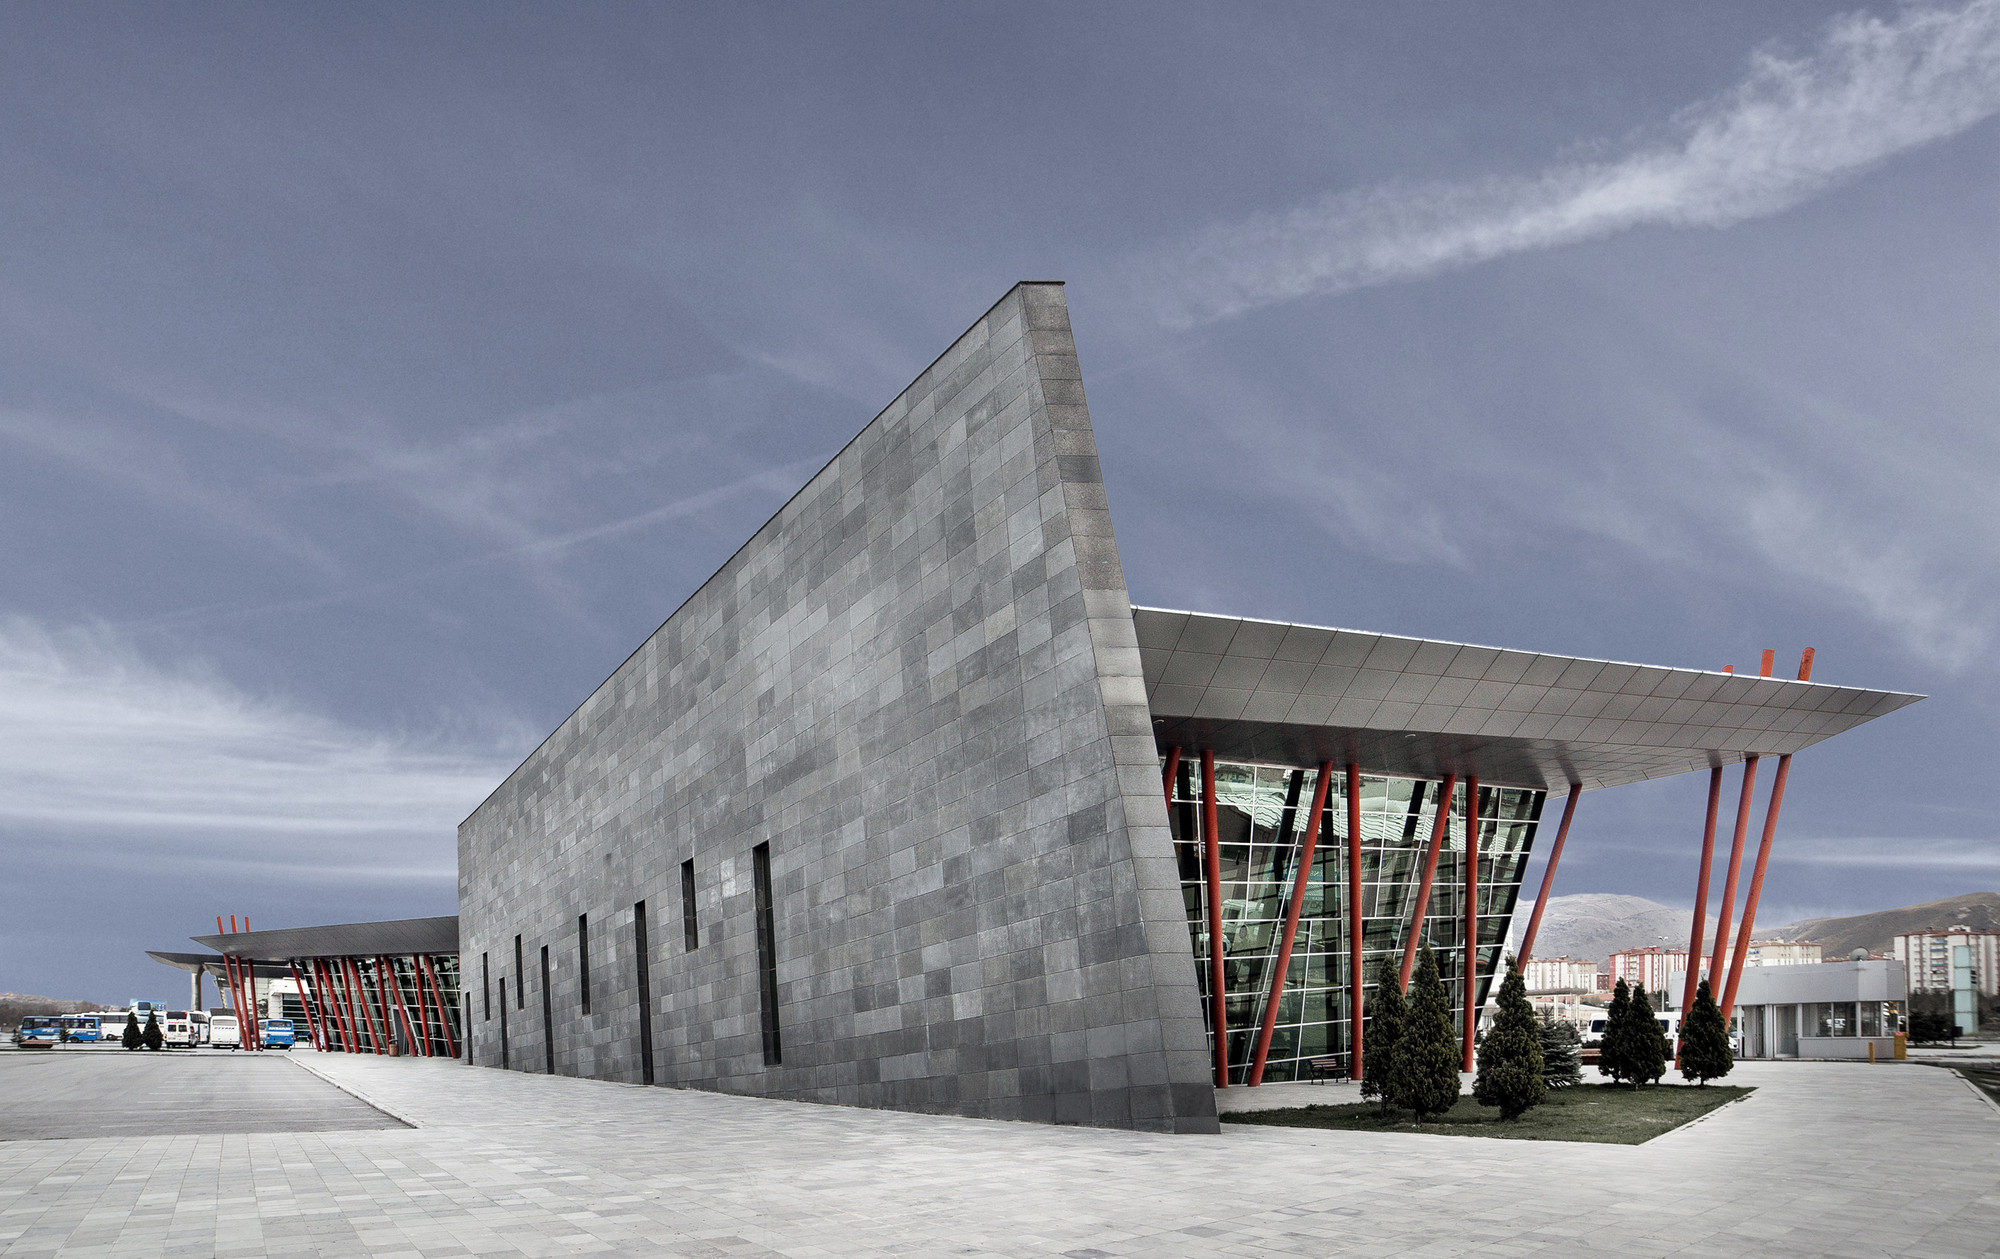 Kayseri West City Bus Terminal / Bahadir Kul Architects, © Ket Kolektif